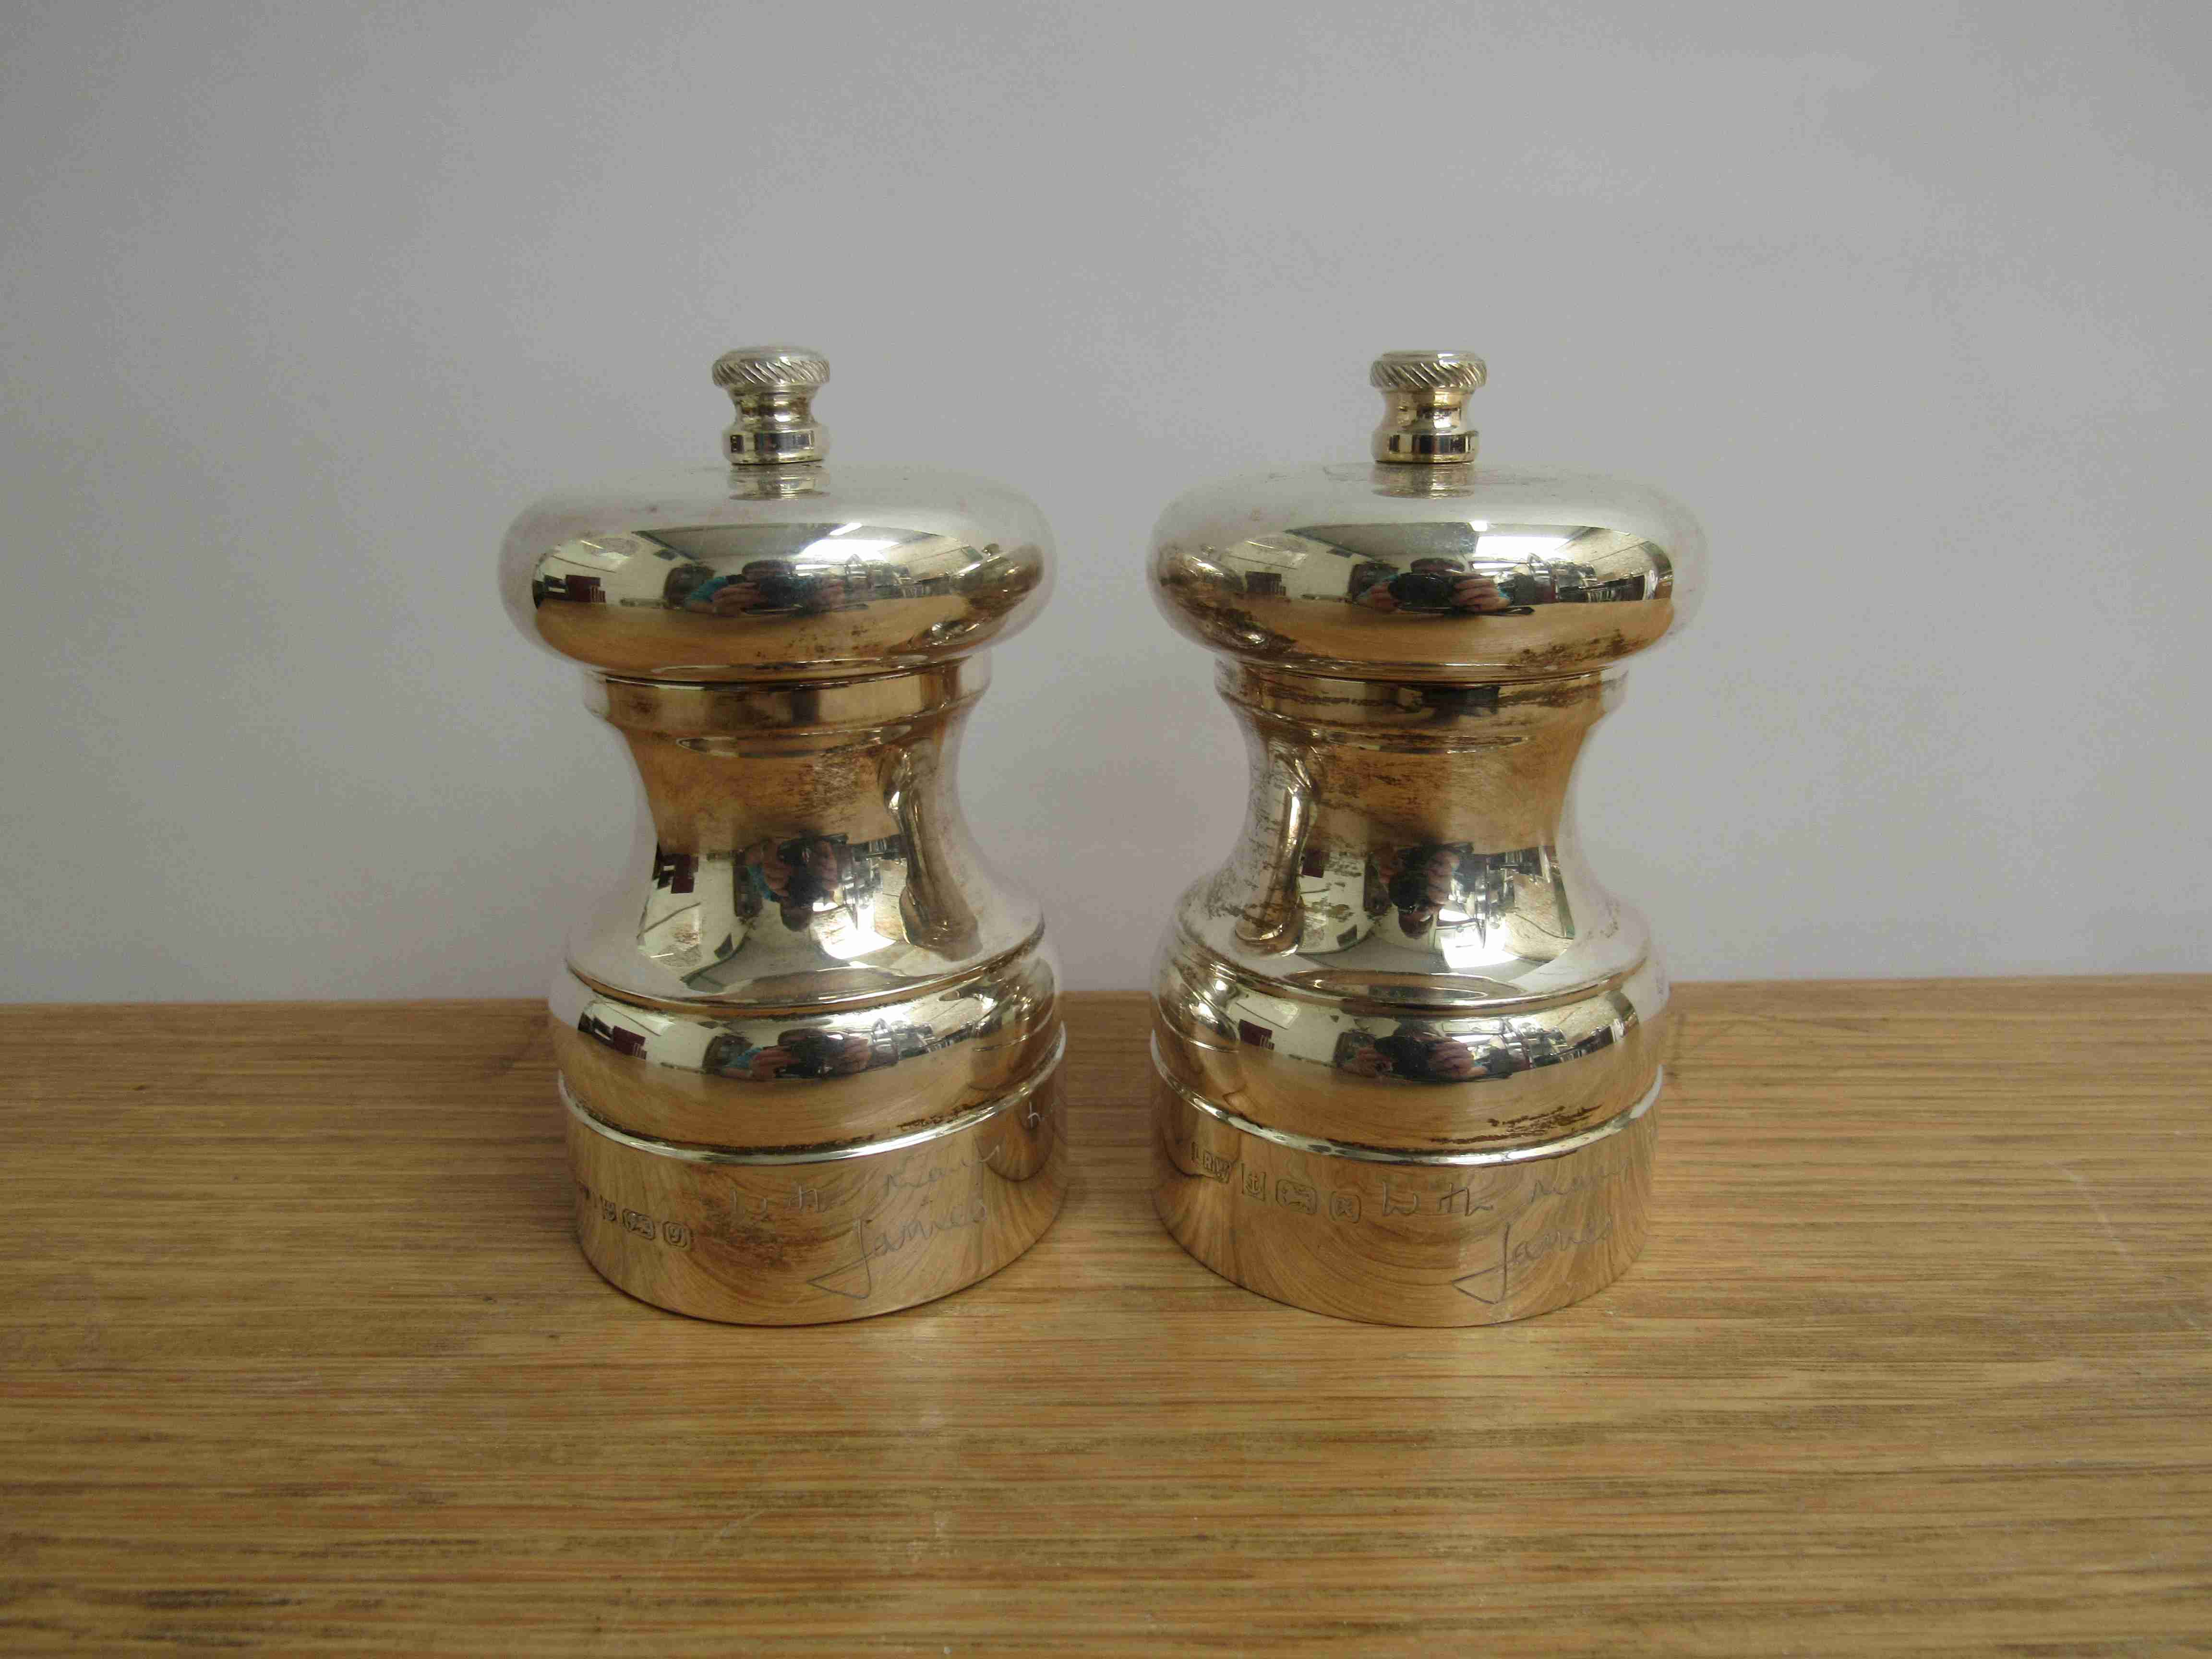 Lot 11 - A pair of Lawrence R Watson & Co silver salt and pepper grinders,